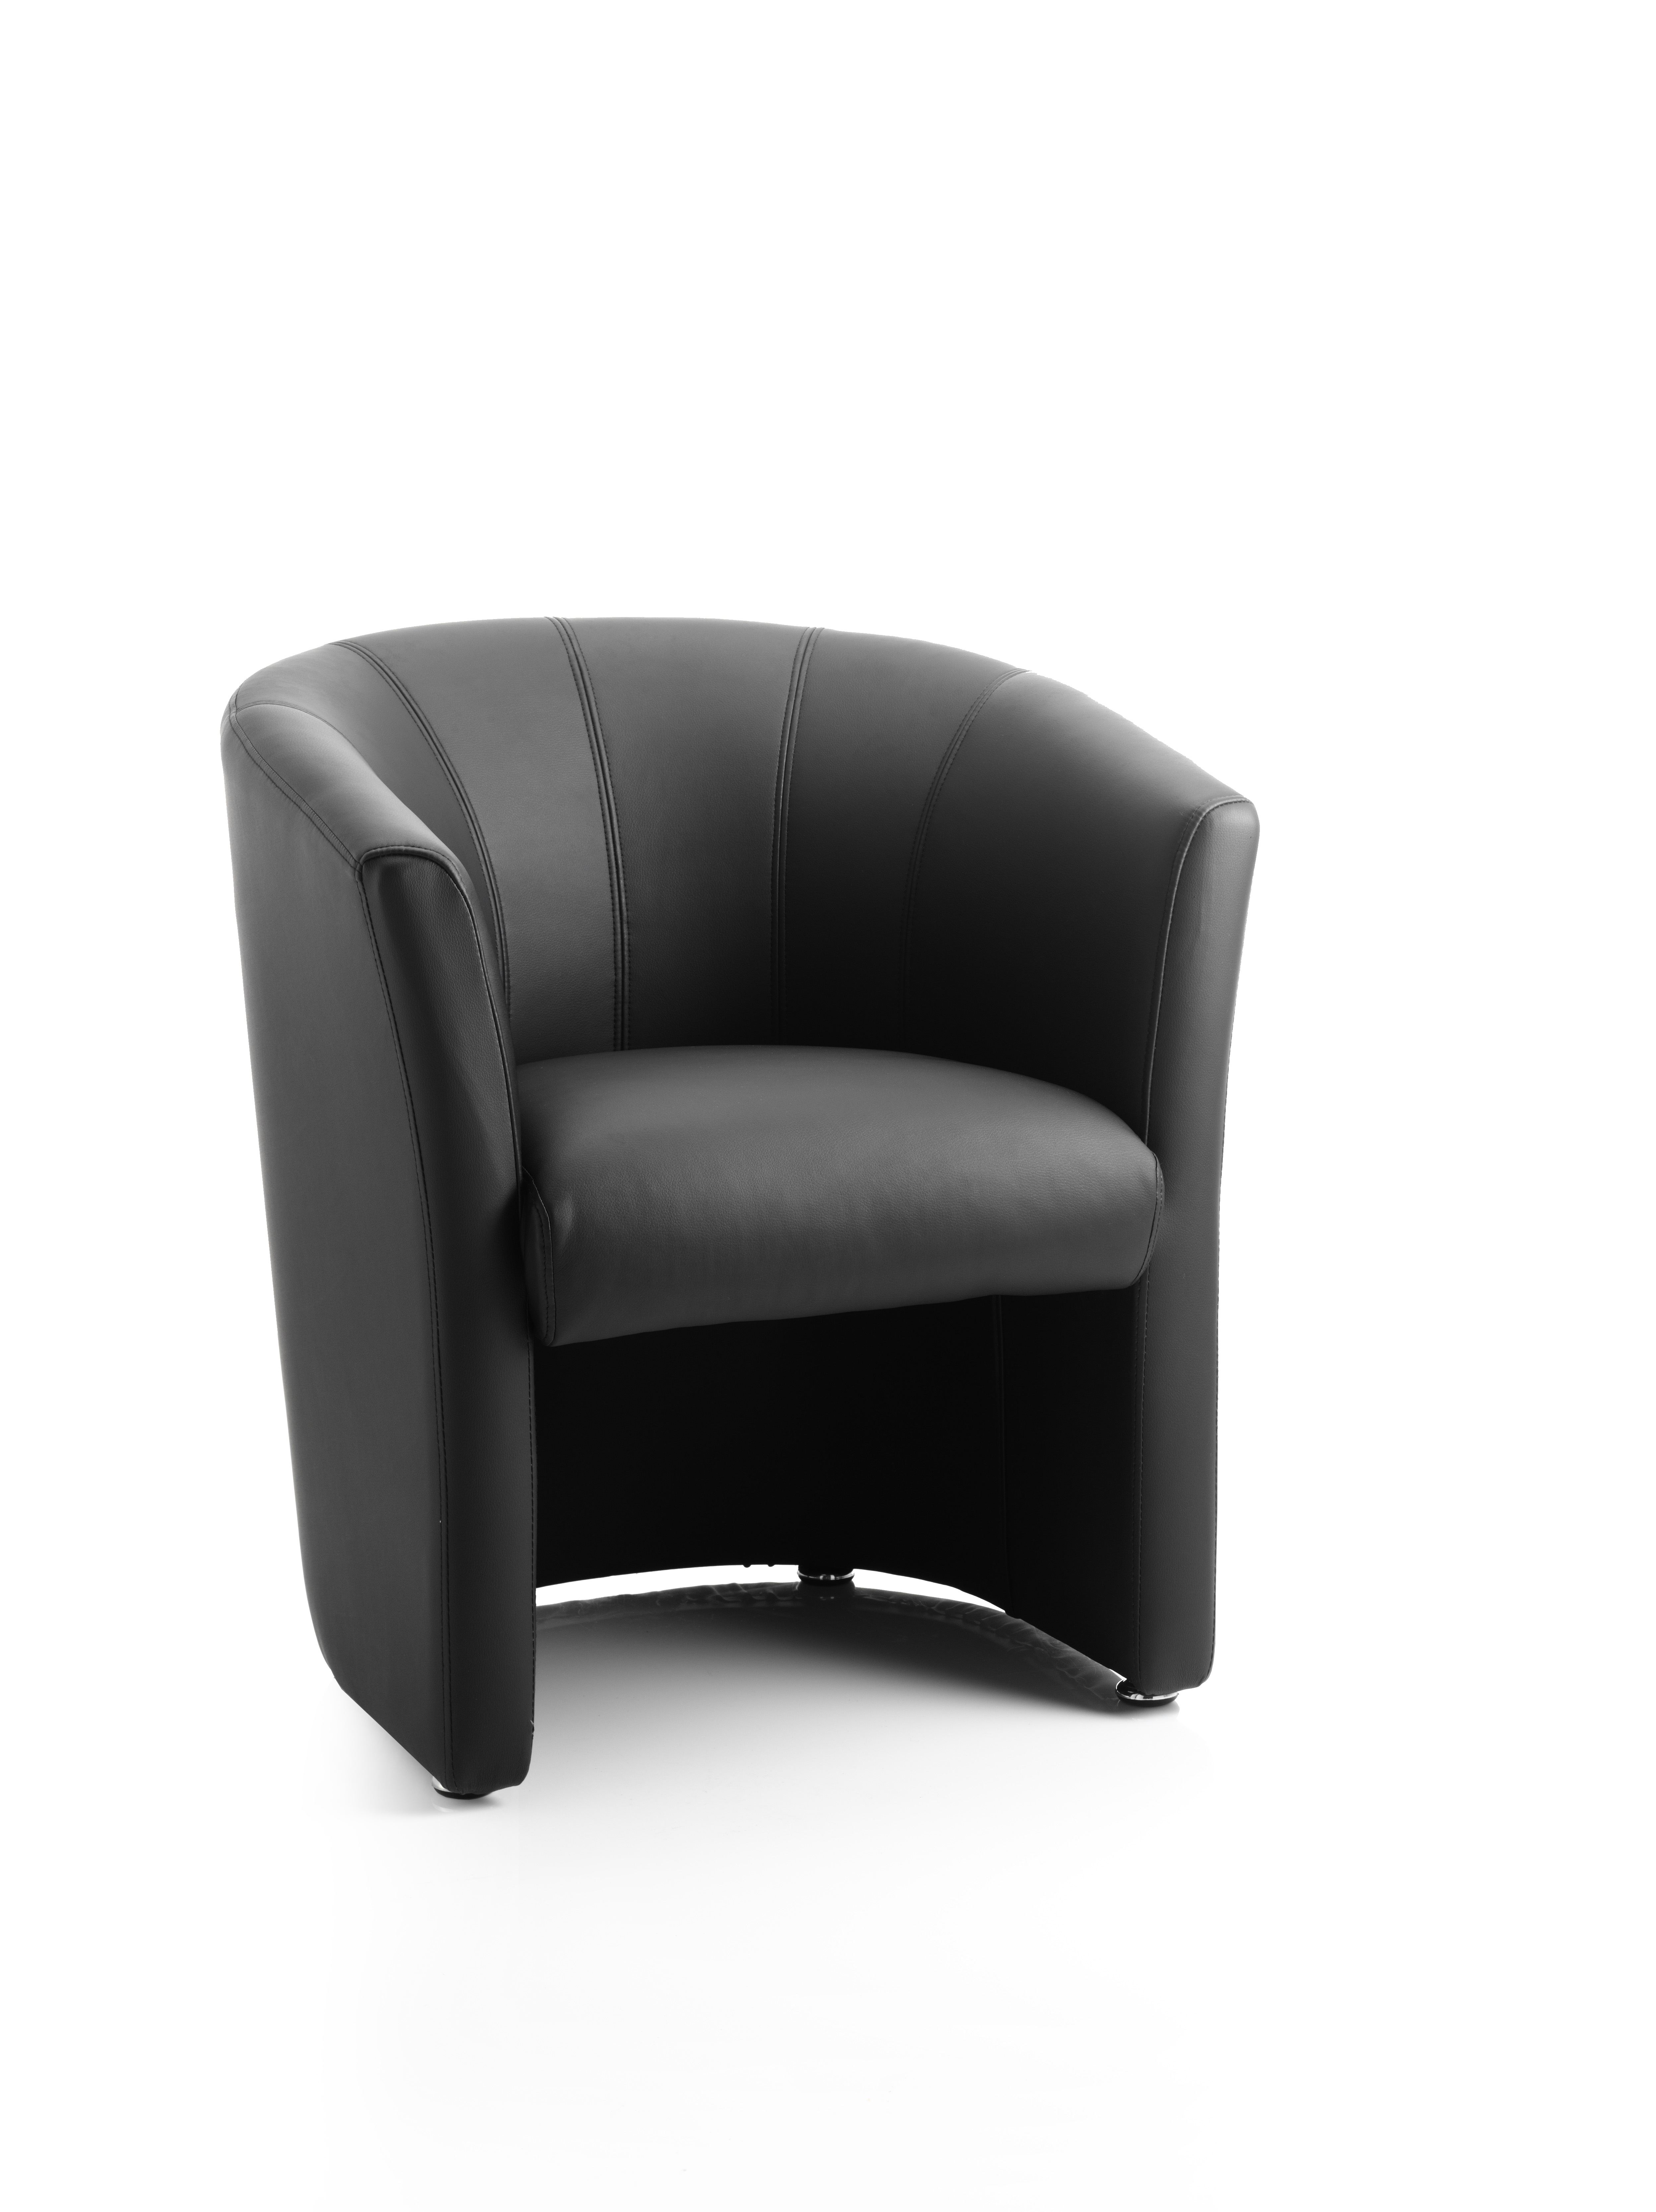 Reception Chairs Neo Single Tub Black Leather BR000100